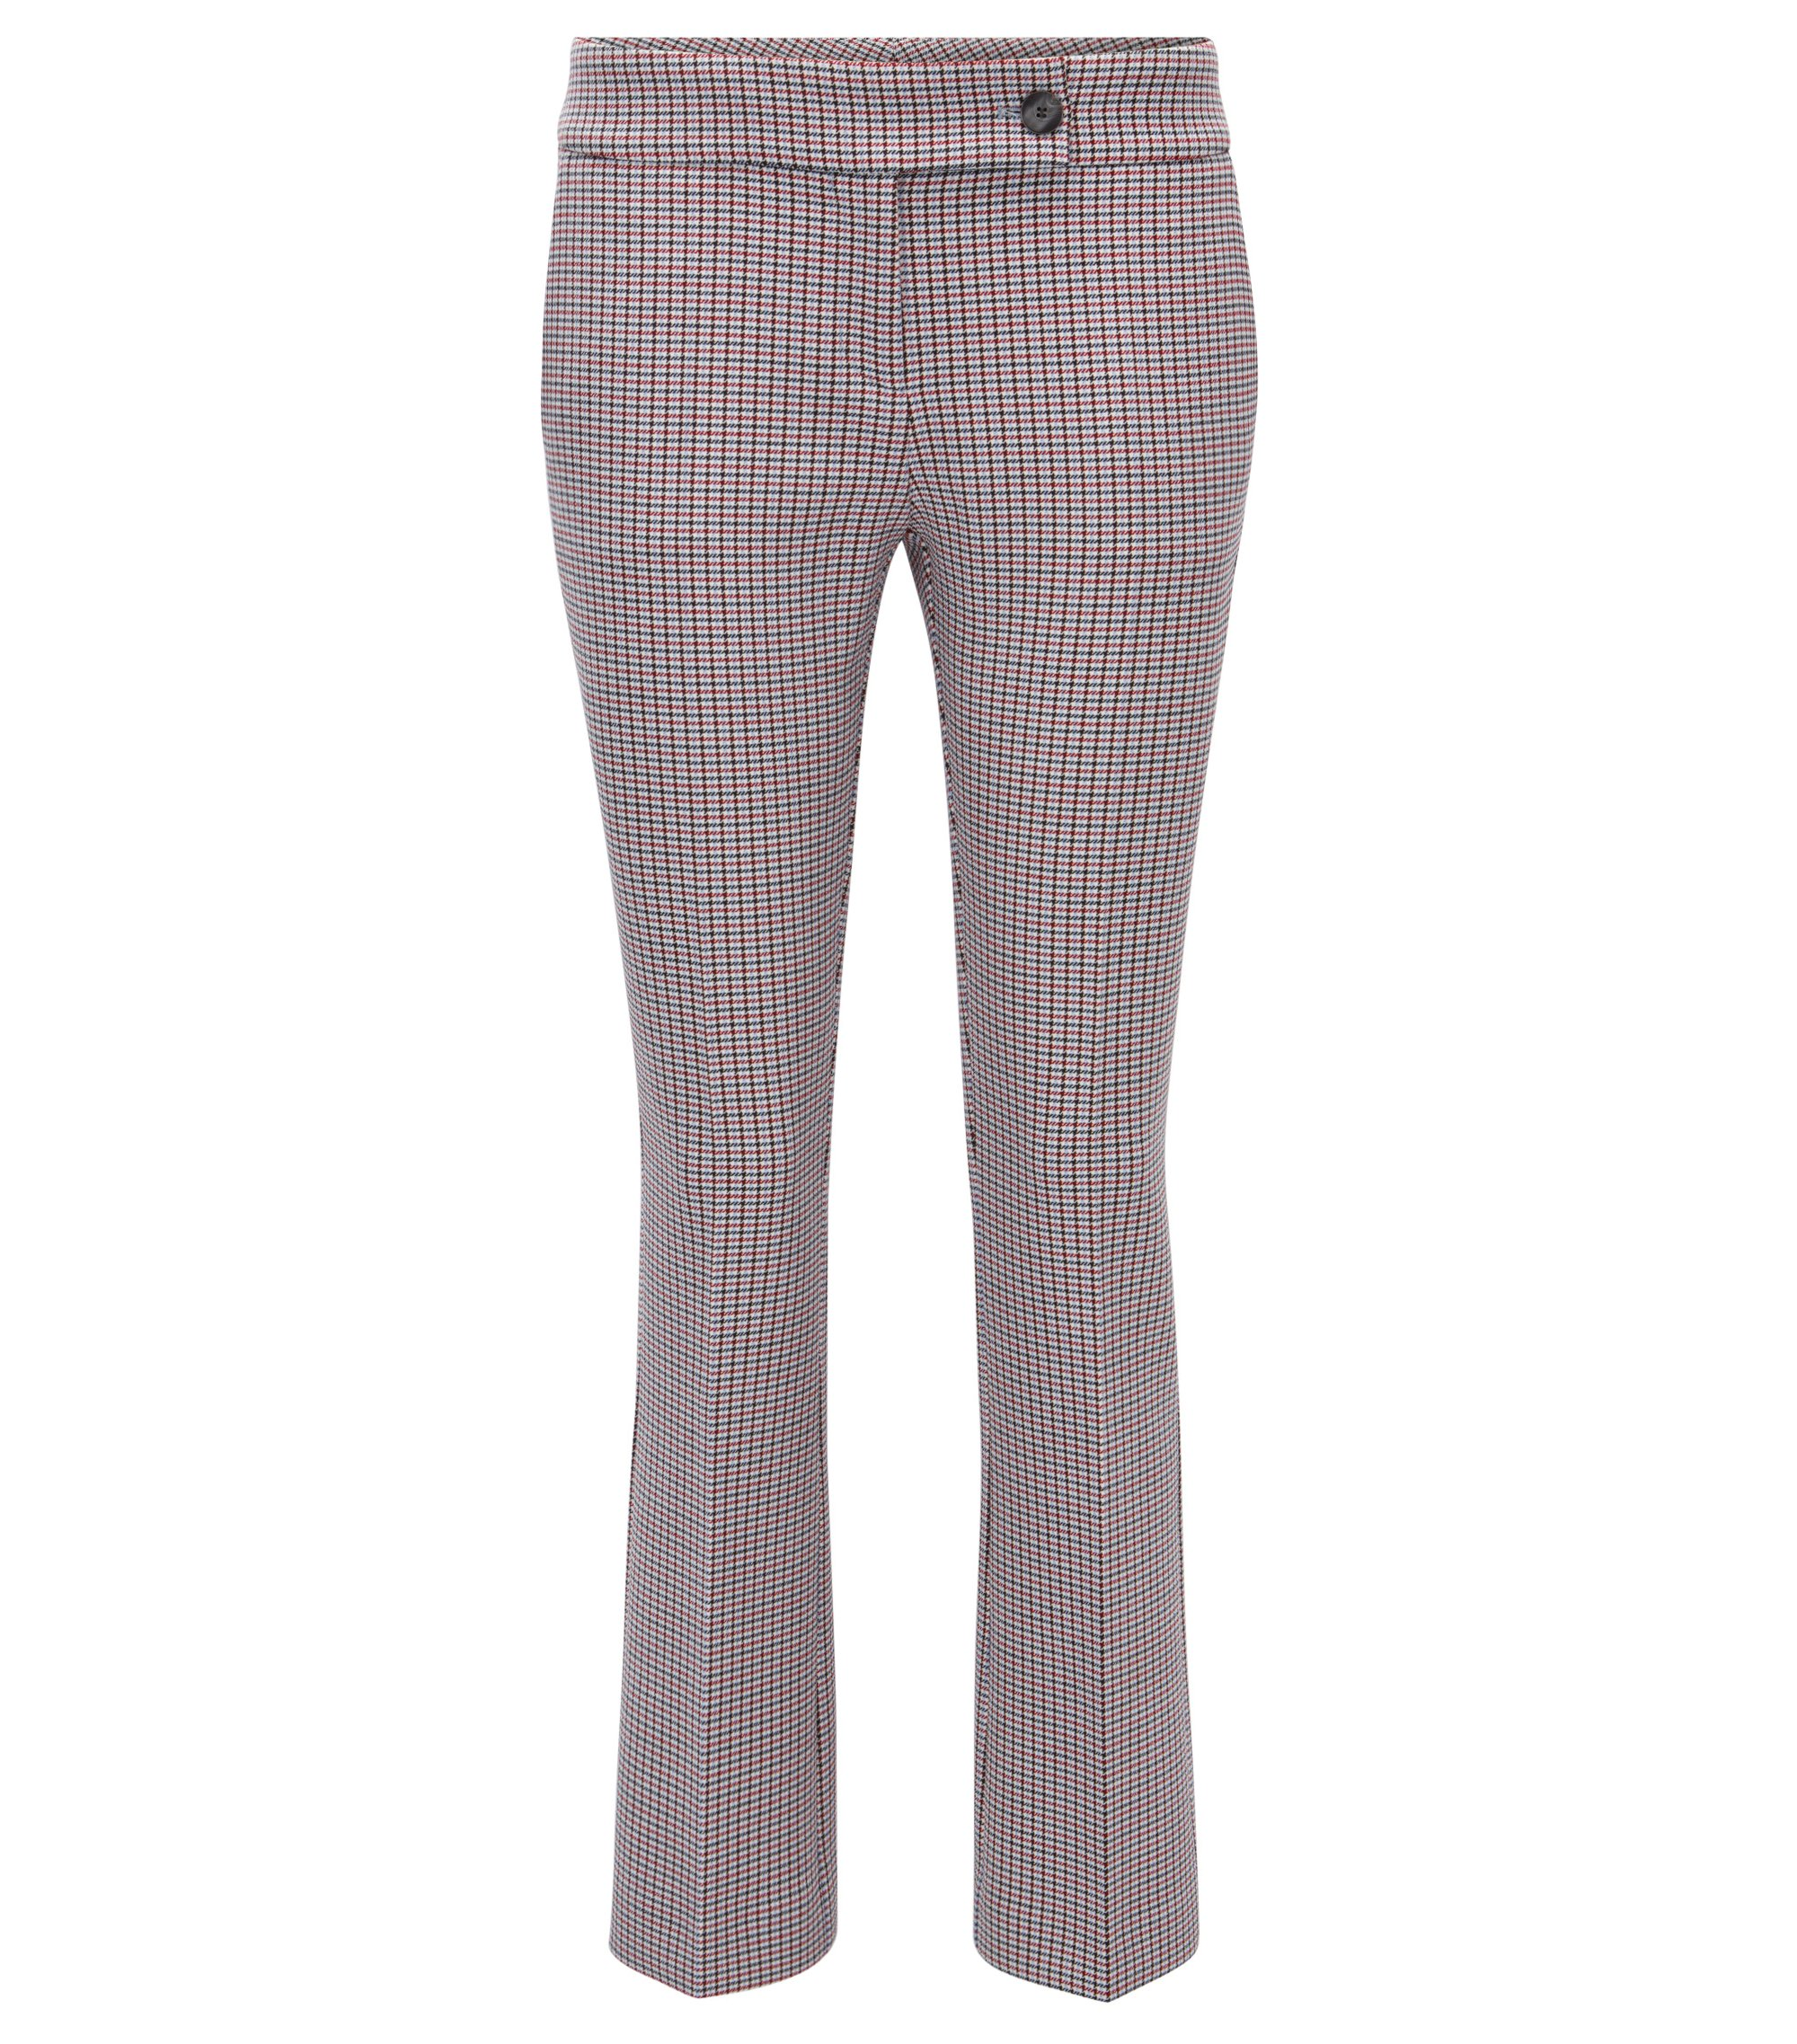 Pantalon Regular Fit en tissu double face, Fantaisie